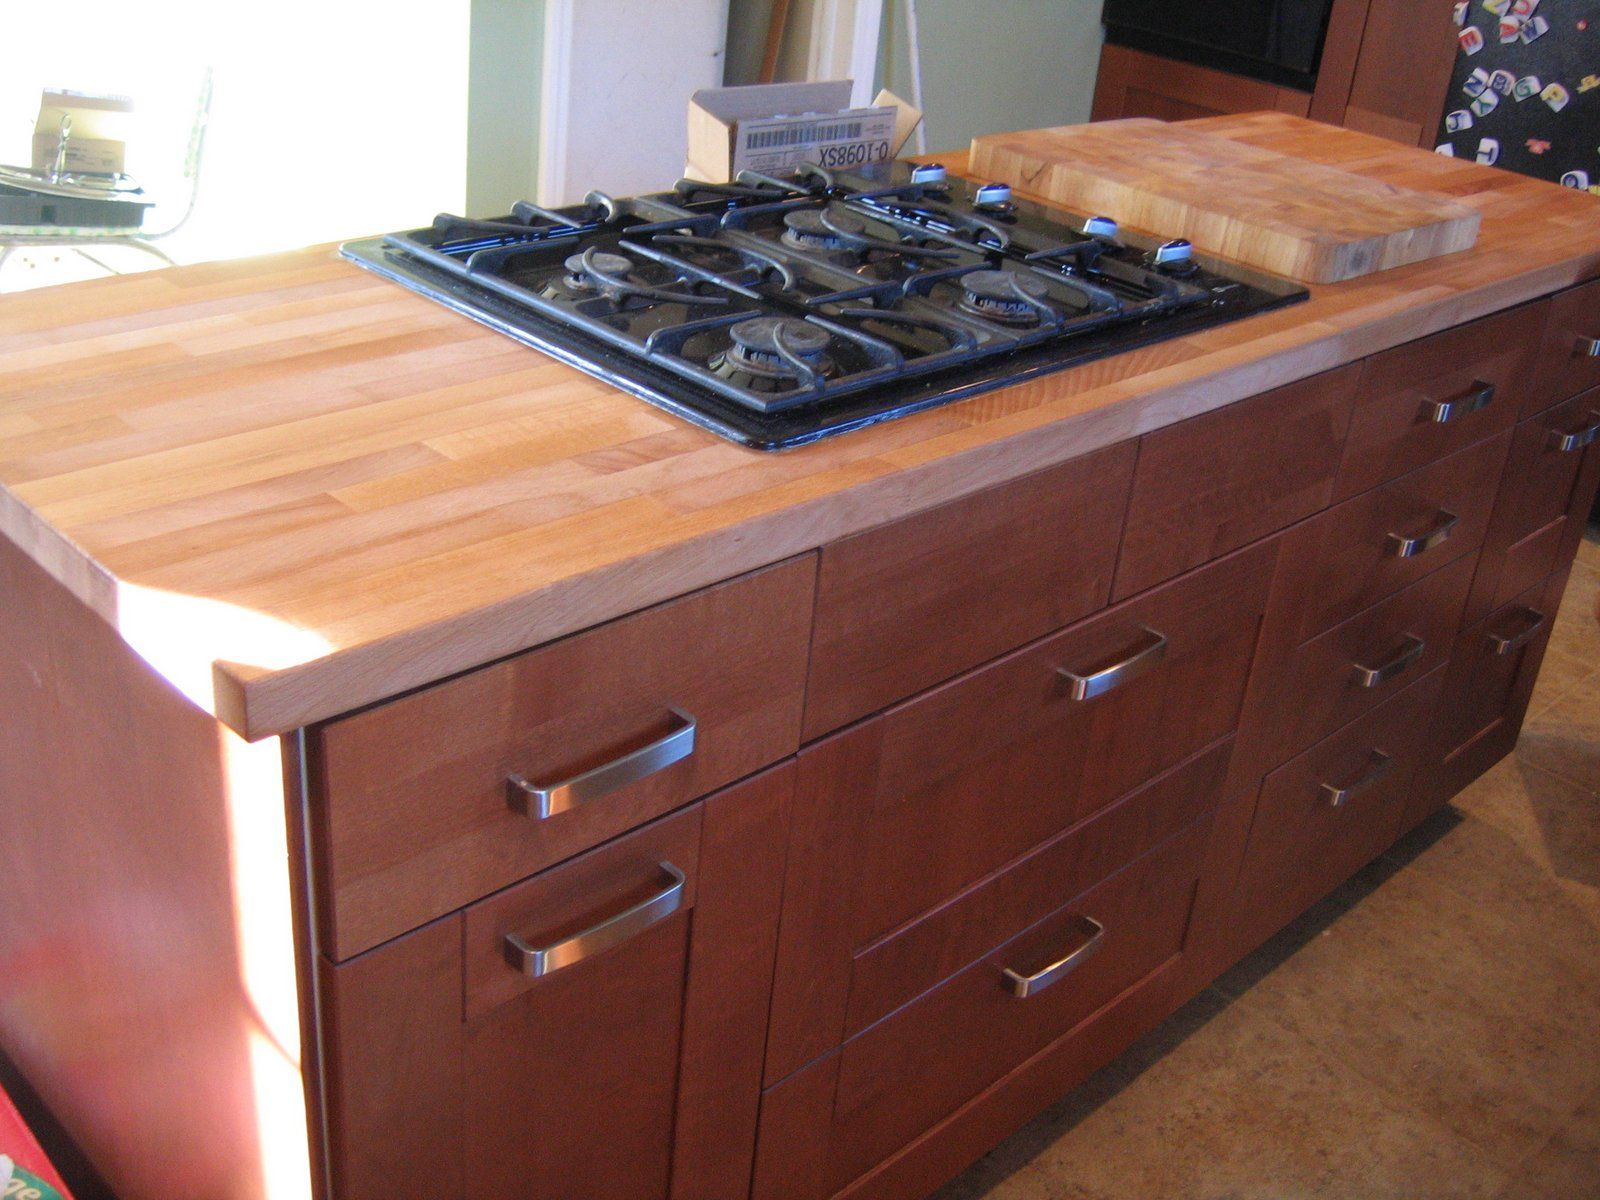 Furniture Diy Cherry Wood Butcher Block Countertops For Dark Cabinets With Drawer And Stainless St Diy Kitchen Furniture Butcher Block Countertops Diy Kitchen